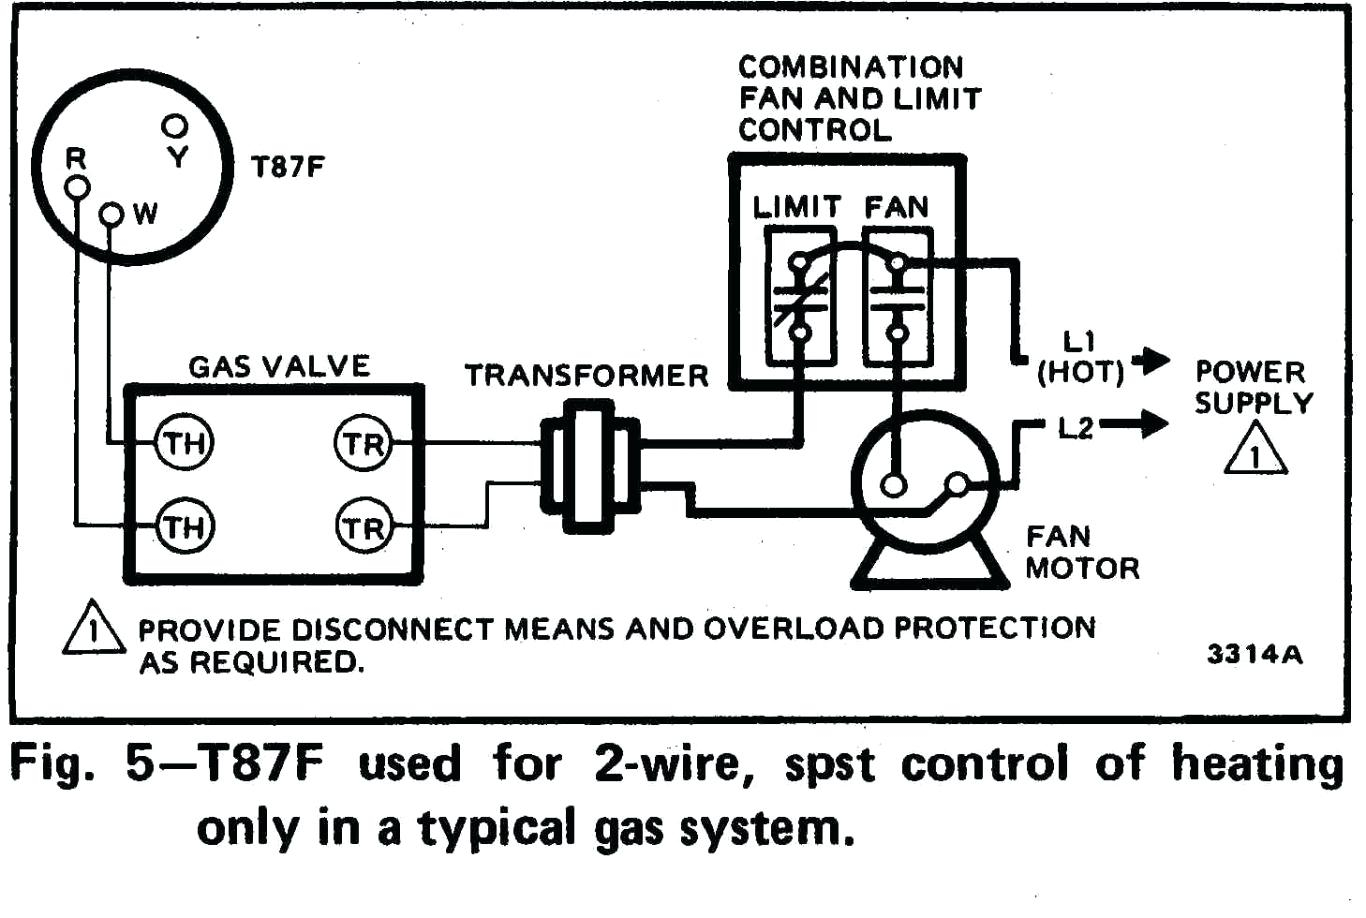 heat trace wiring diagram Collection-Heat Trace Wiring Diagram Best Pajero Alternator Wiring Diagram Headlight Relays bytes Diodes How 12-j